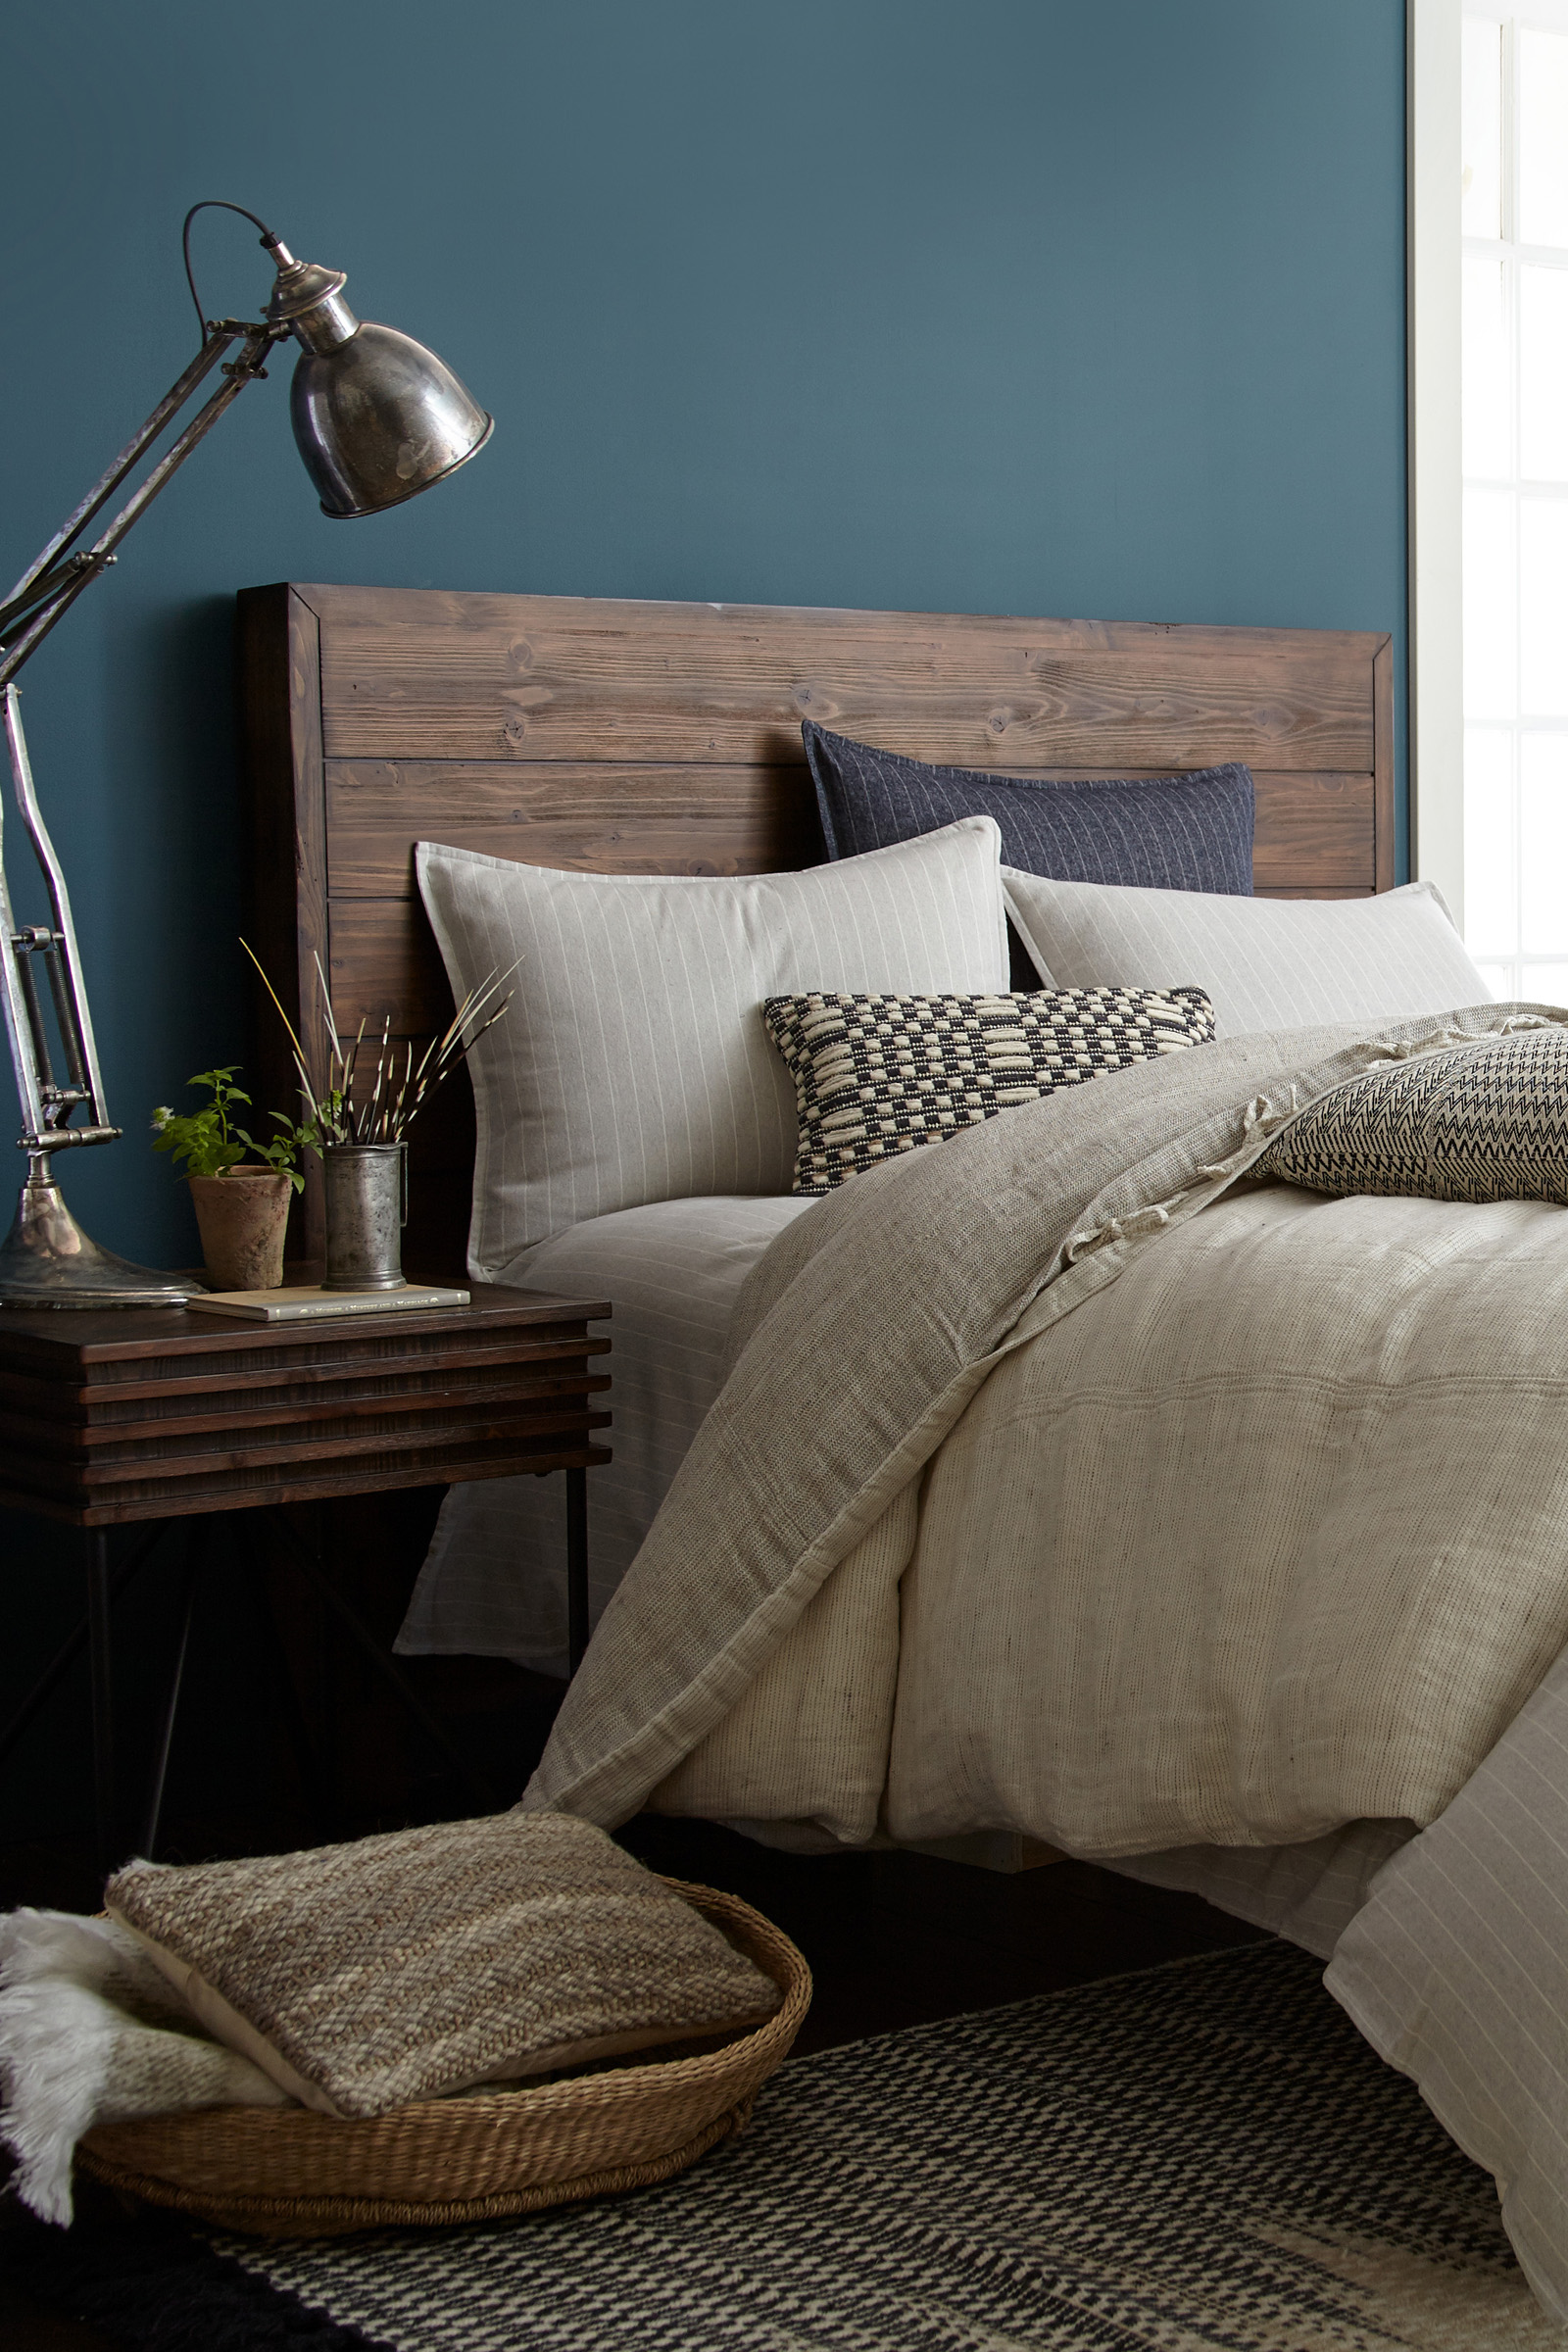 29/01/2019· tour joanna gaines bedroom and get ideas for your own house by shopping everything you need to copy her modern farmhouse style with furniture, bedding, and decor Joanna Gaines' Favorite Paint Colors - HGTV Fixer Upper